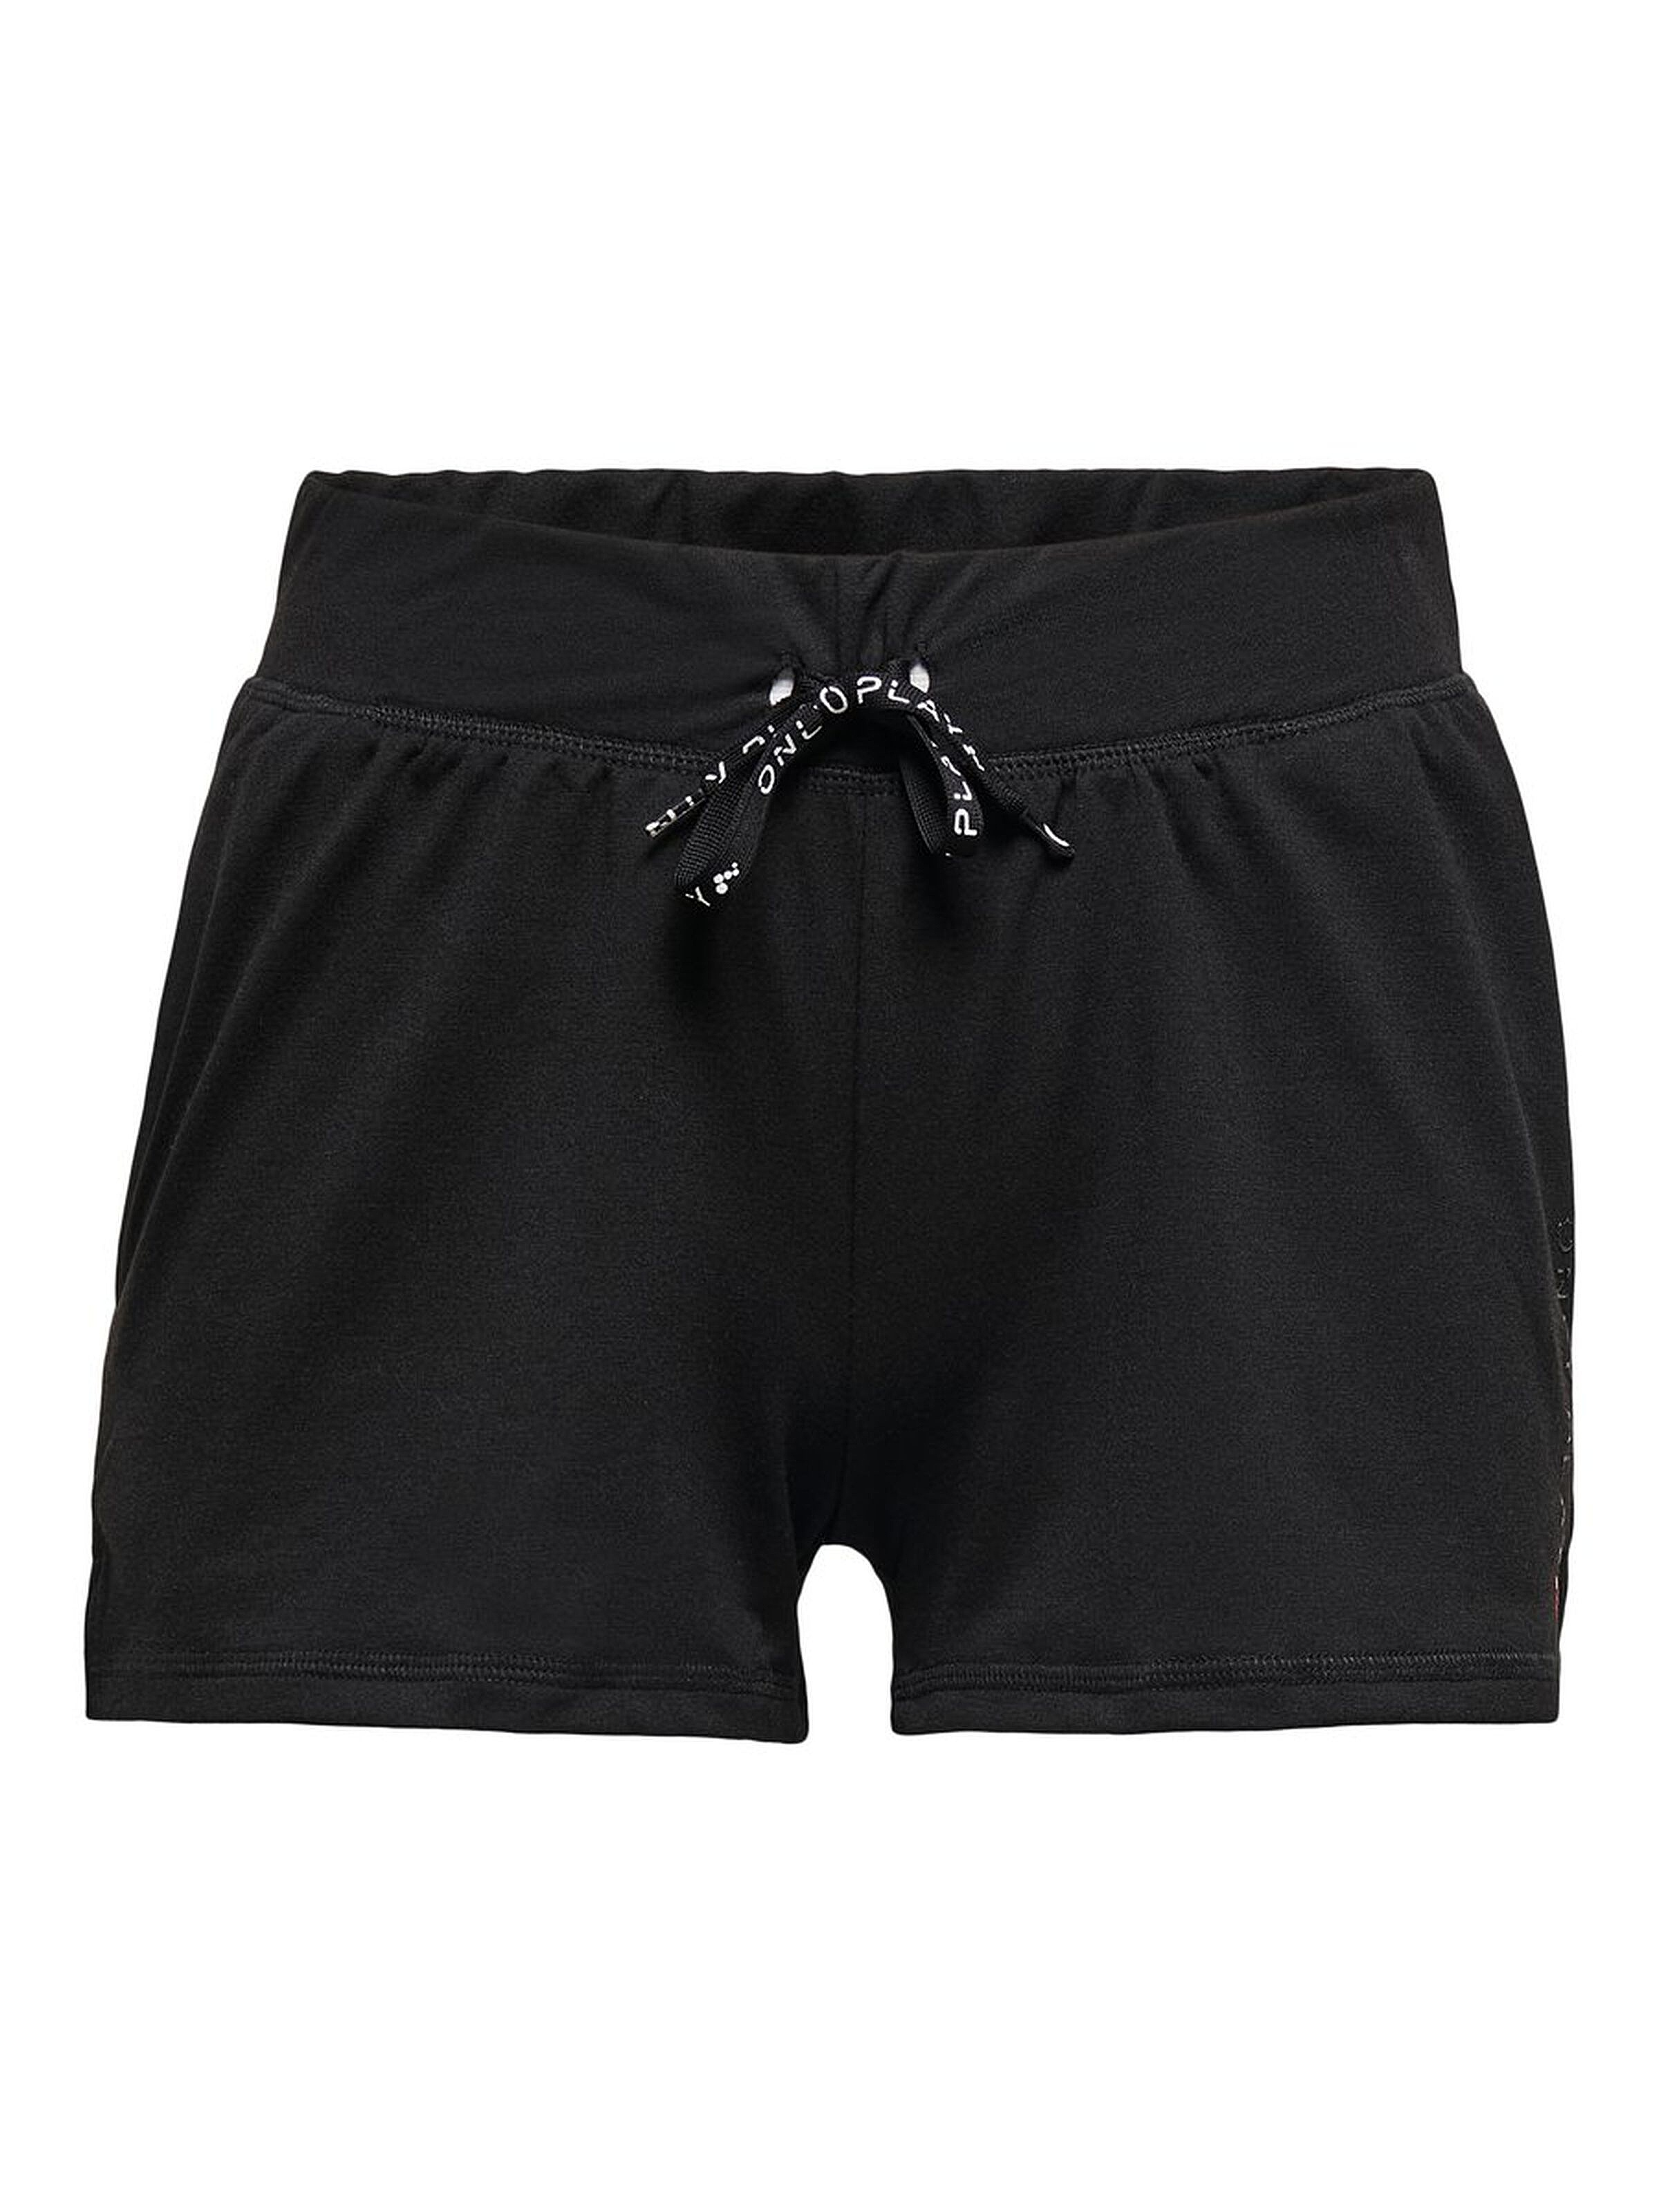 shorts ONLY Play Performance Athl Ayn - Black - women´s